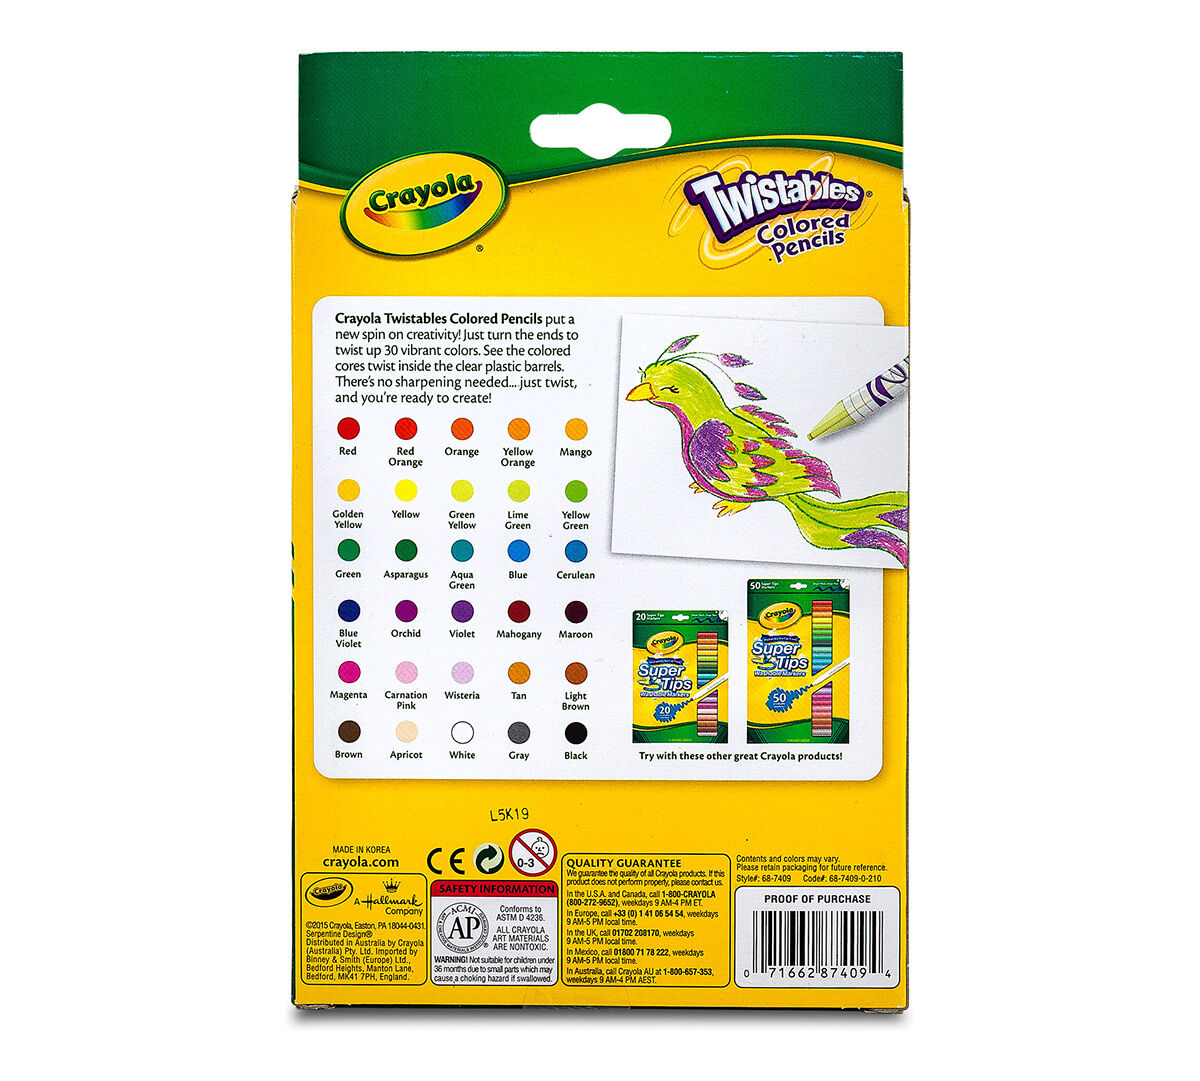 Crayola Twistables Colored Pencils Always Sharp Art Tools for Kids